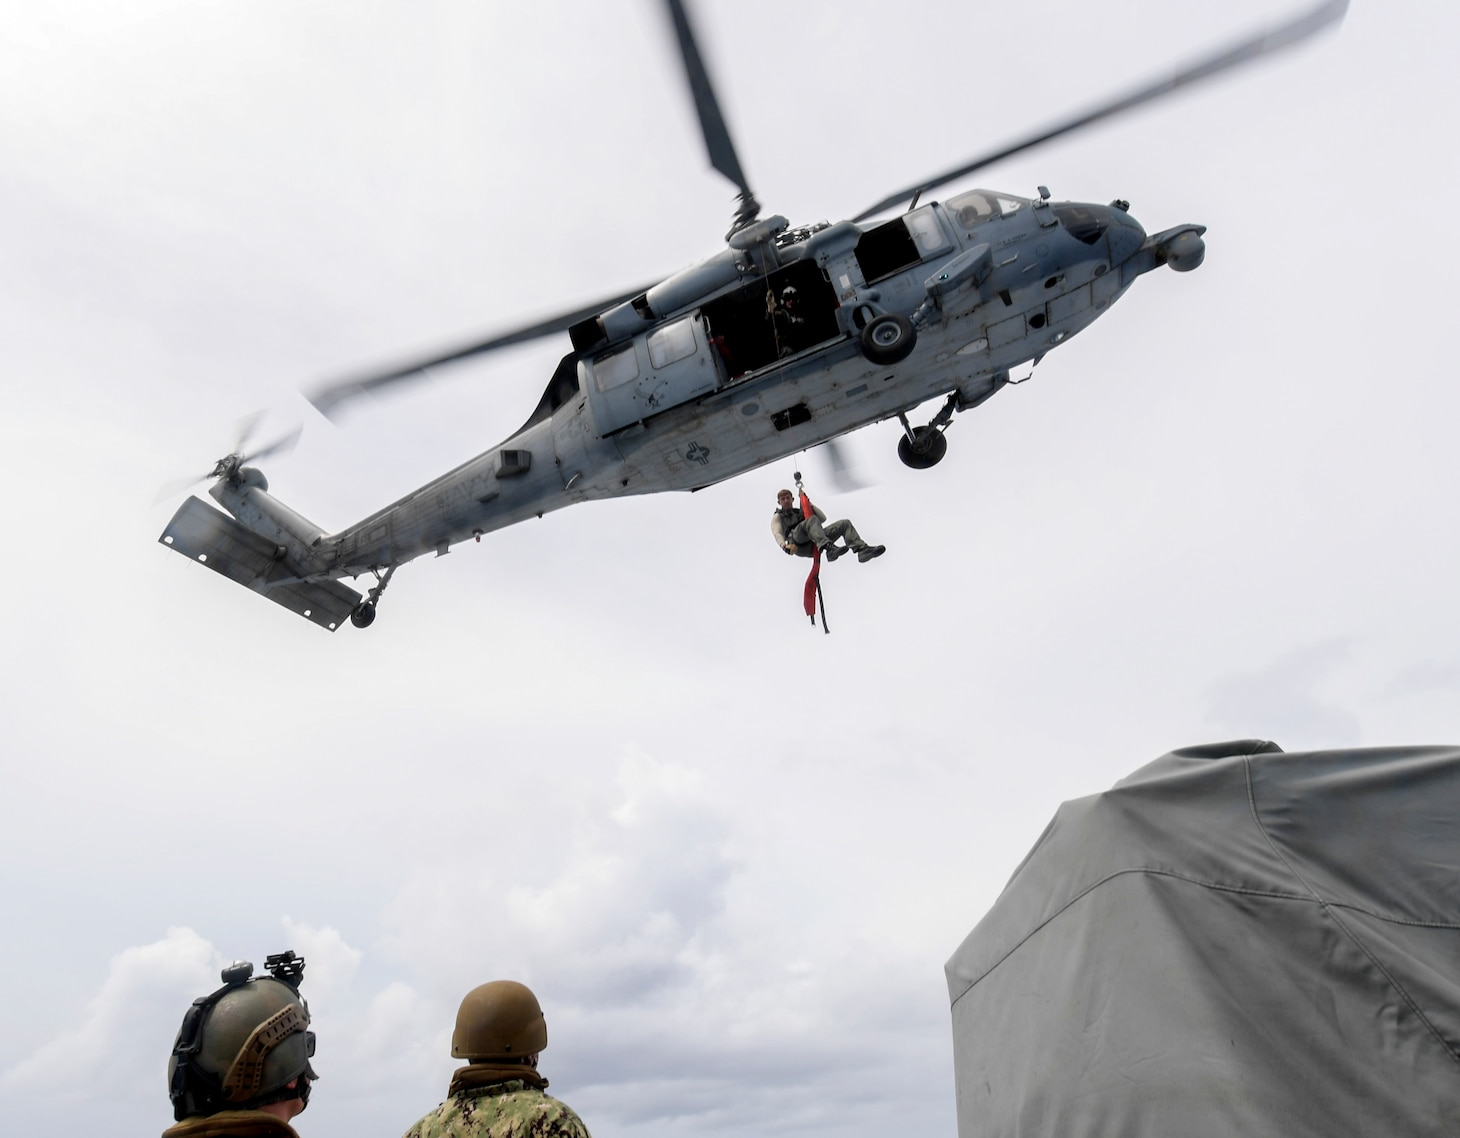 """Naval Air Crewman (Helicopter) 2nd Class Spencer Kachele, assigned to the """"Island Knights"""" of Helicopter Sea Combat Squadron (HSC) 25, is lowered by an MH-60S Sea Hawk helicopter to a Mark VI patrol boat manned by Coastal Riverine Squadron 4, Det. Guam, during a joint search and rescue exercise with U.S. Coast Guard Sector Guam, Feb. 23, 2018."""